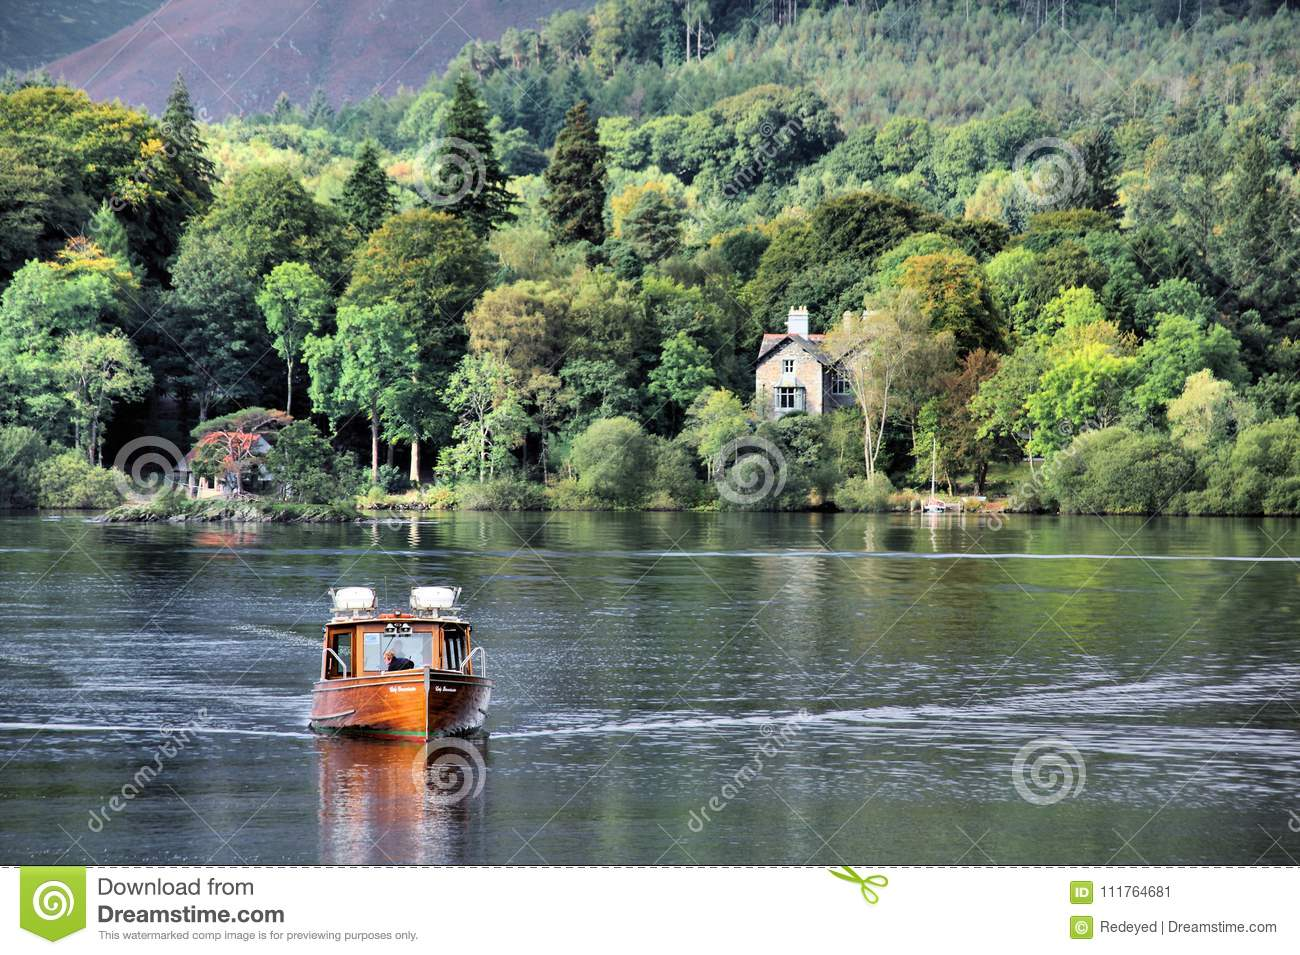 Derwentwater Ferry at Keswick in the Lakes District